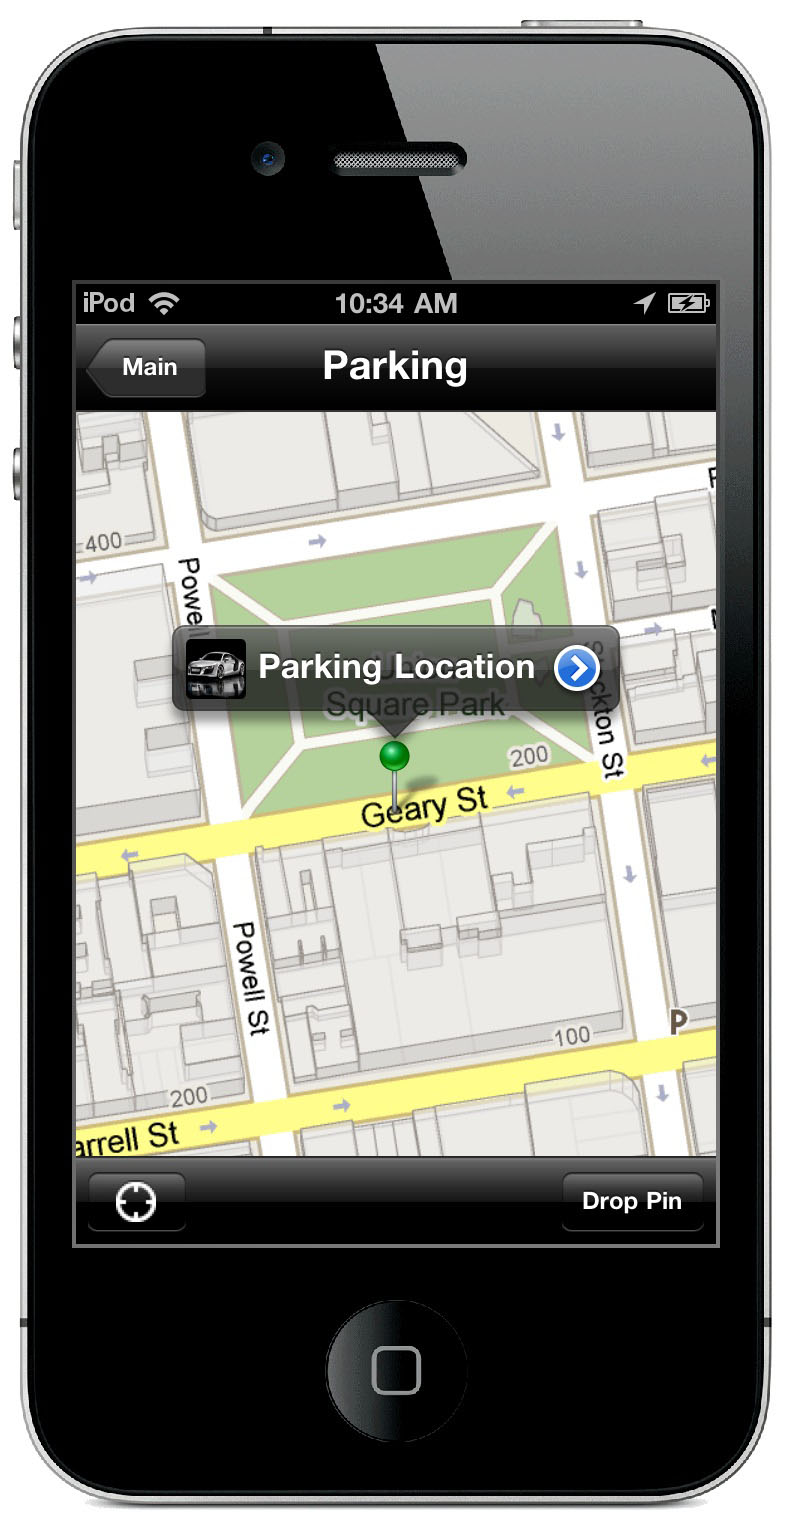 Audi Joins The Crowd, Launches iPhone CarMonitor App